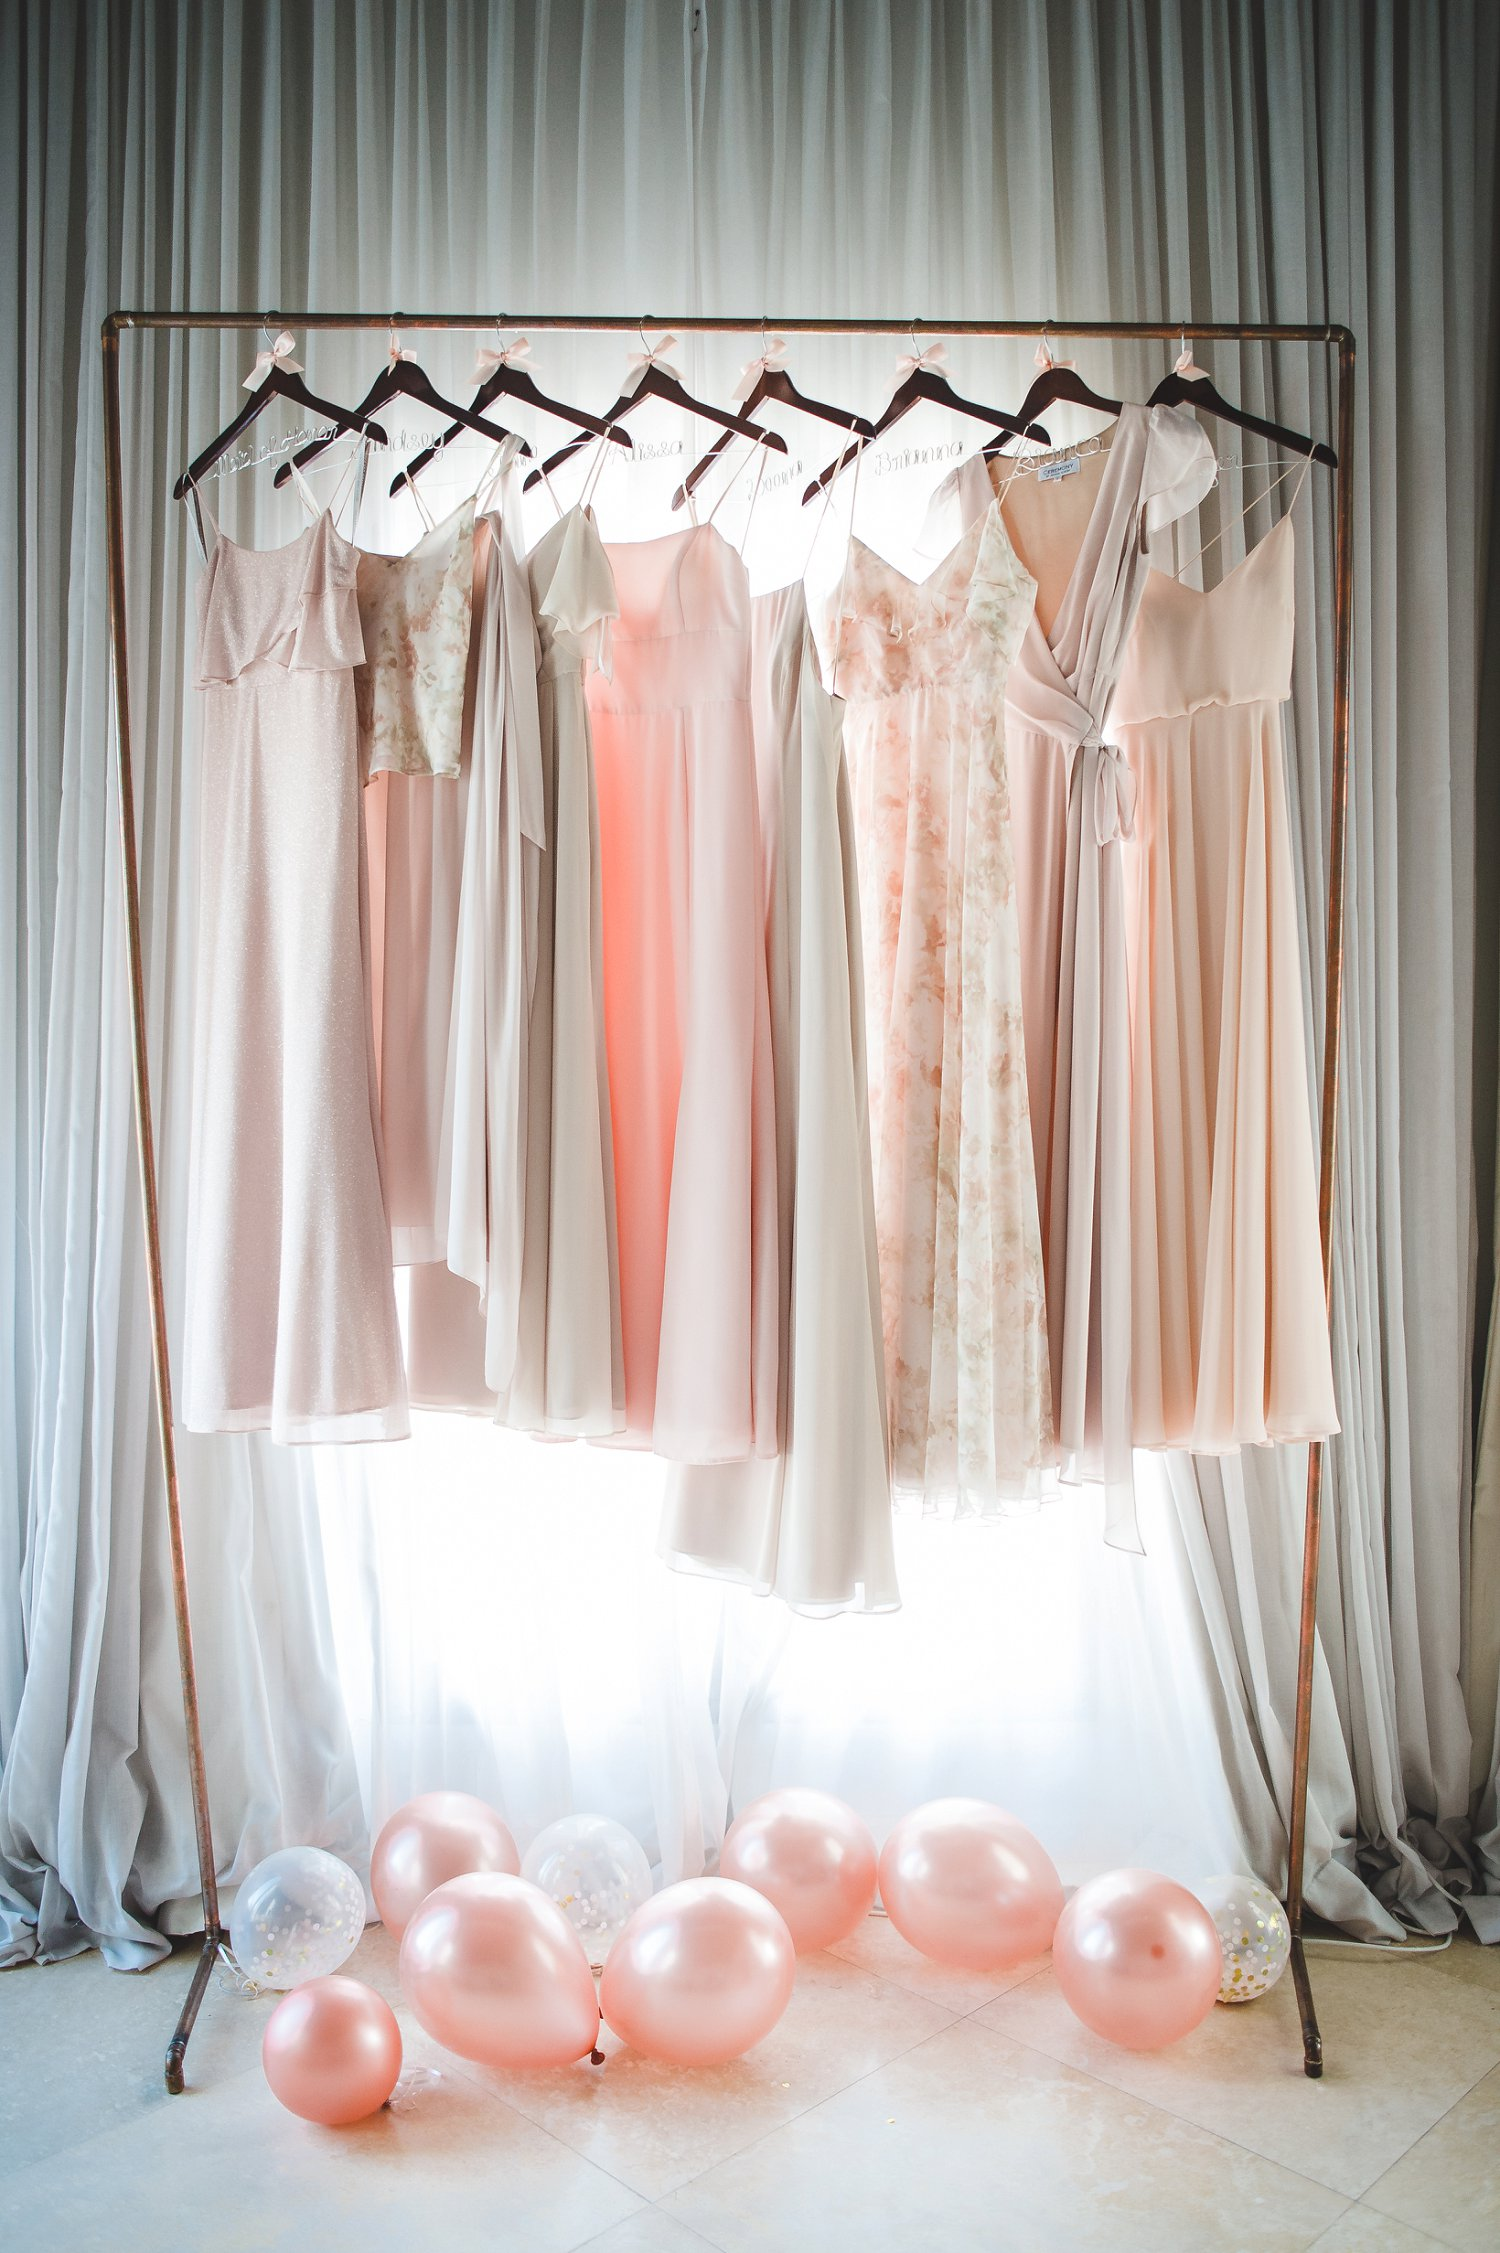 Mismatched bridesmaids dresses ideas in ivory, blush, neutral for destination wedding